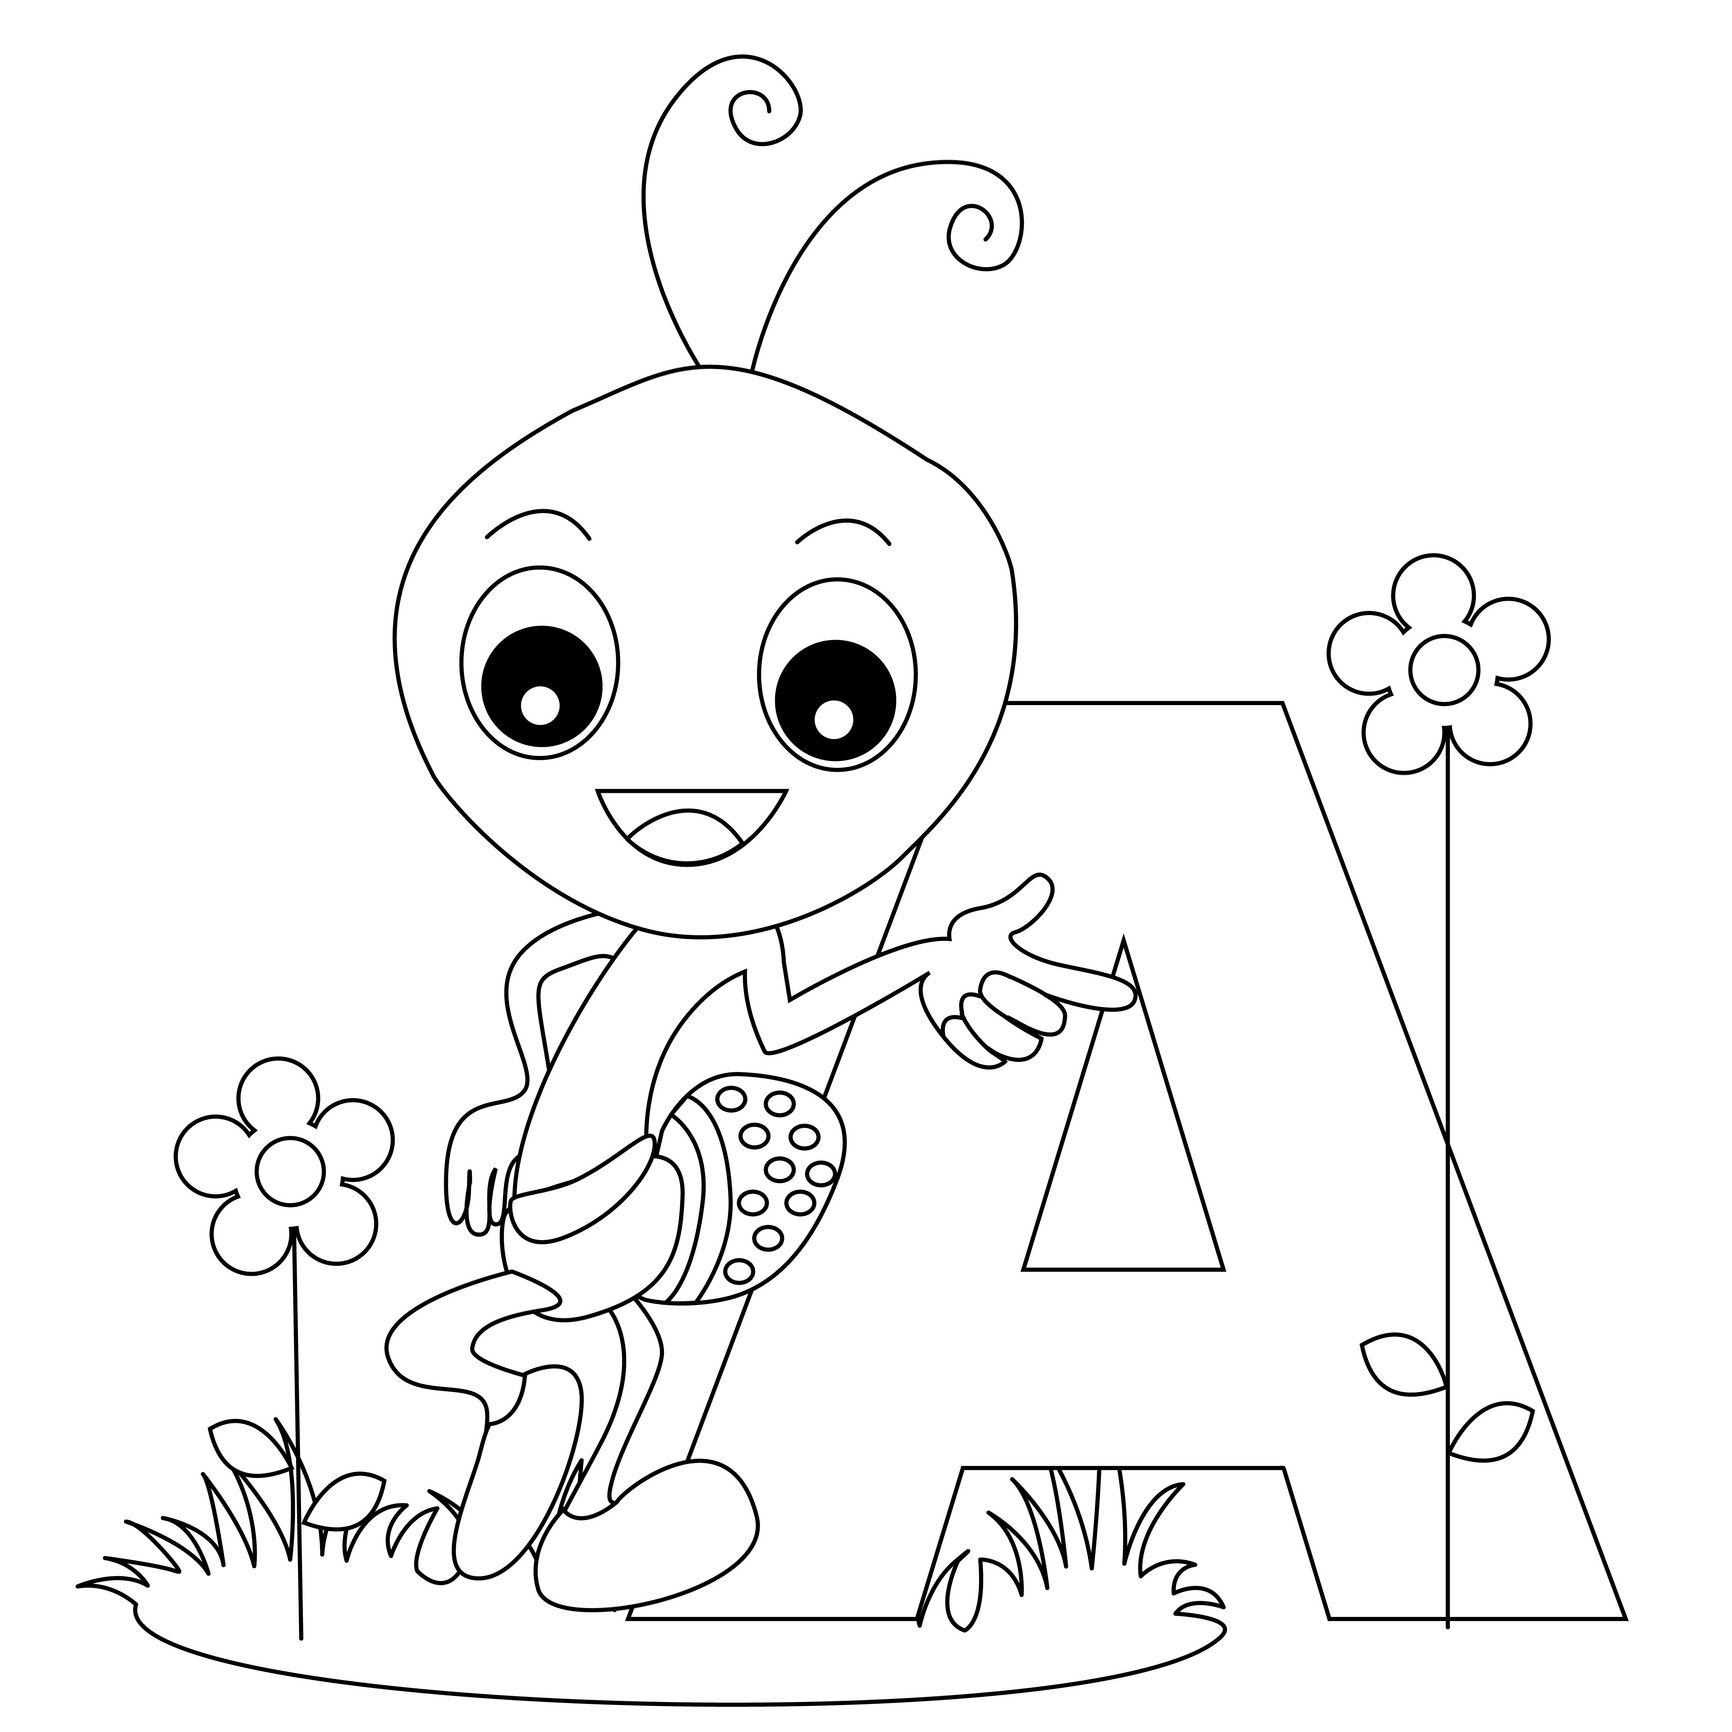 find this pin and more on kid stuff free printable animal alphabet - Alphabet Coloring Pages For Kids